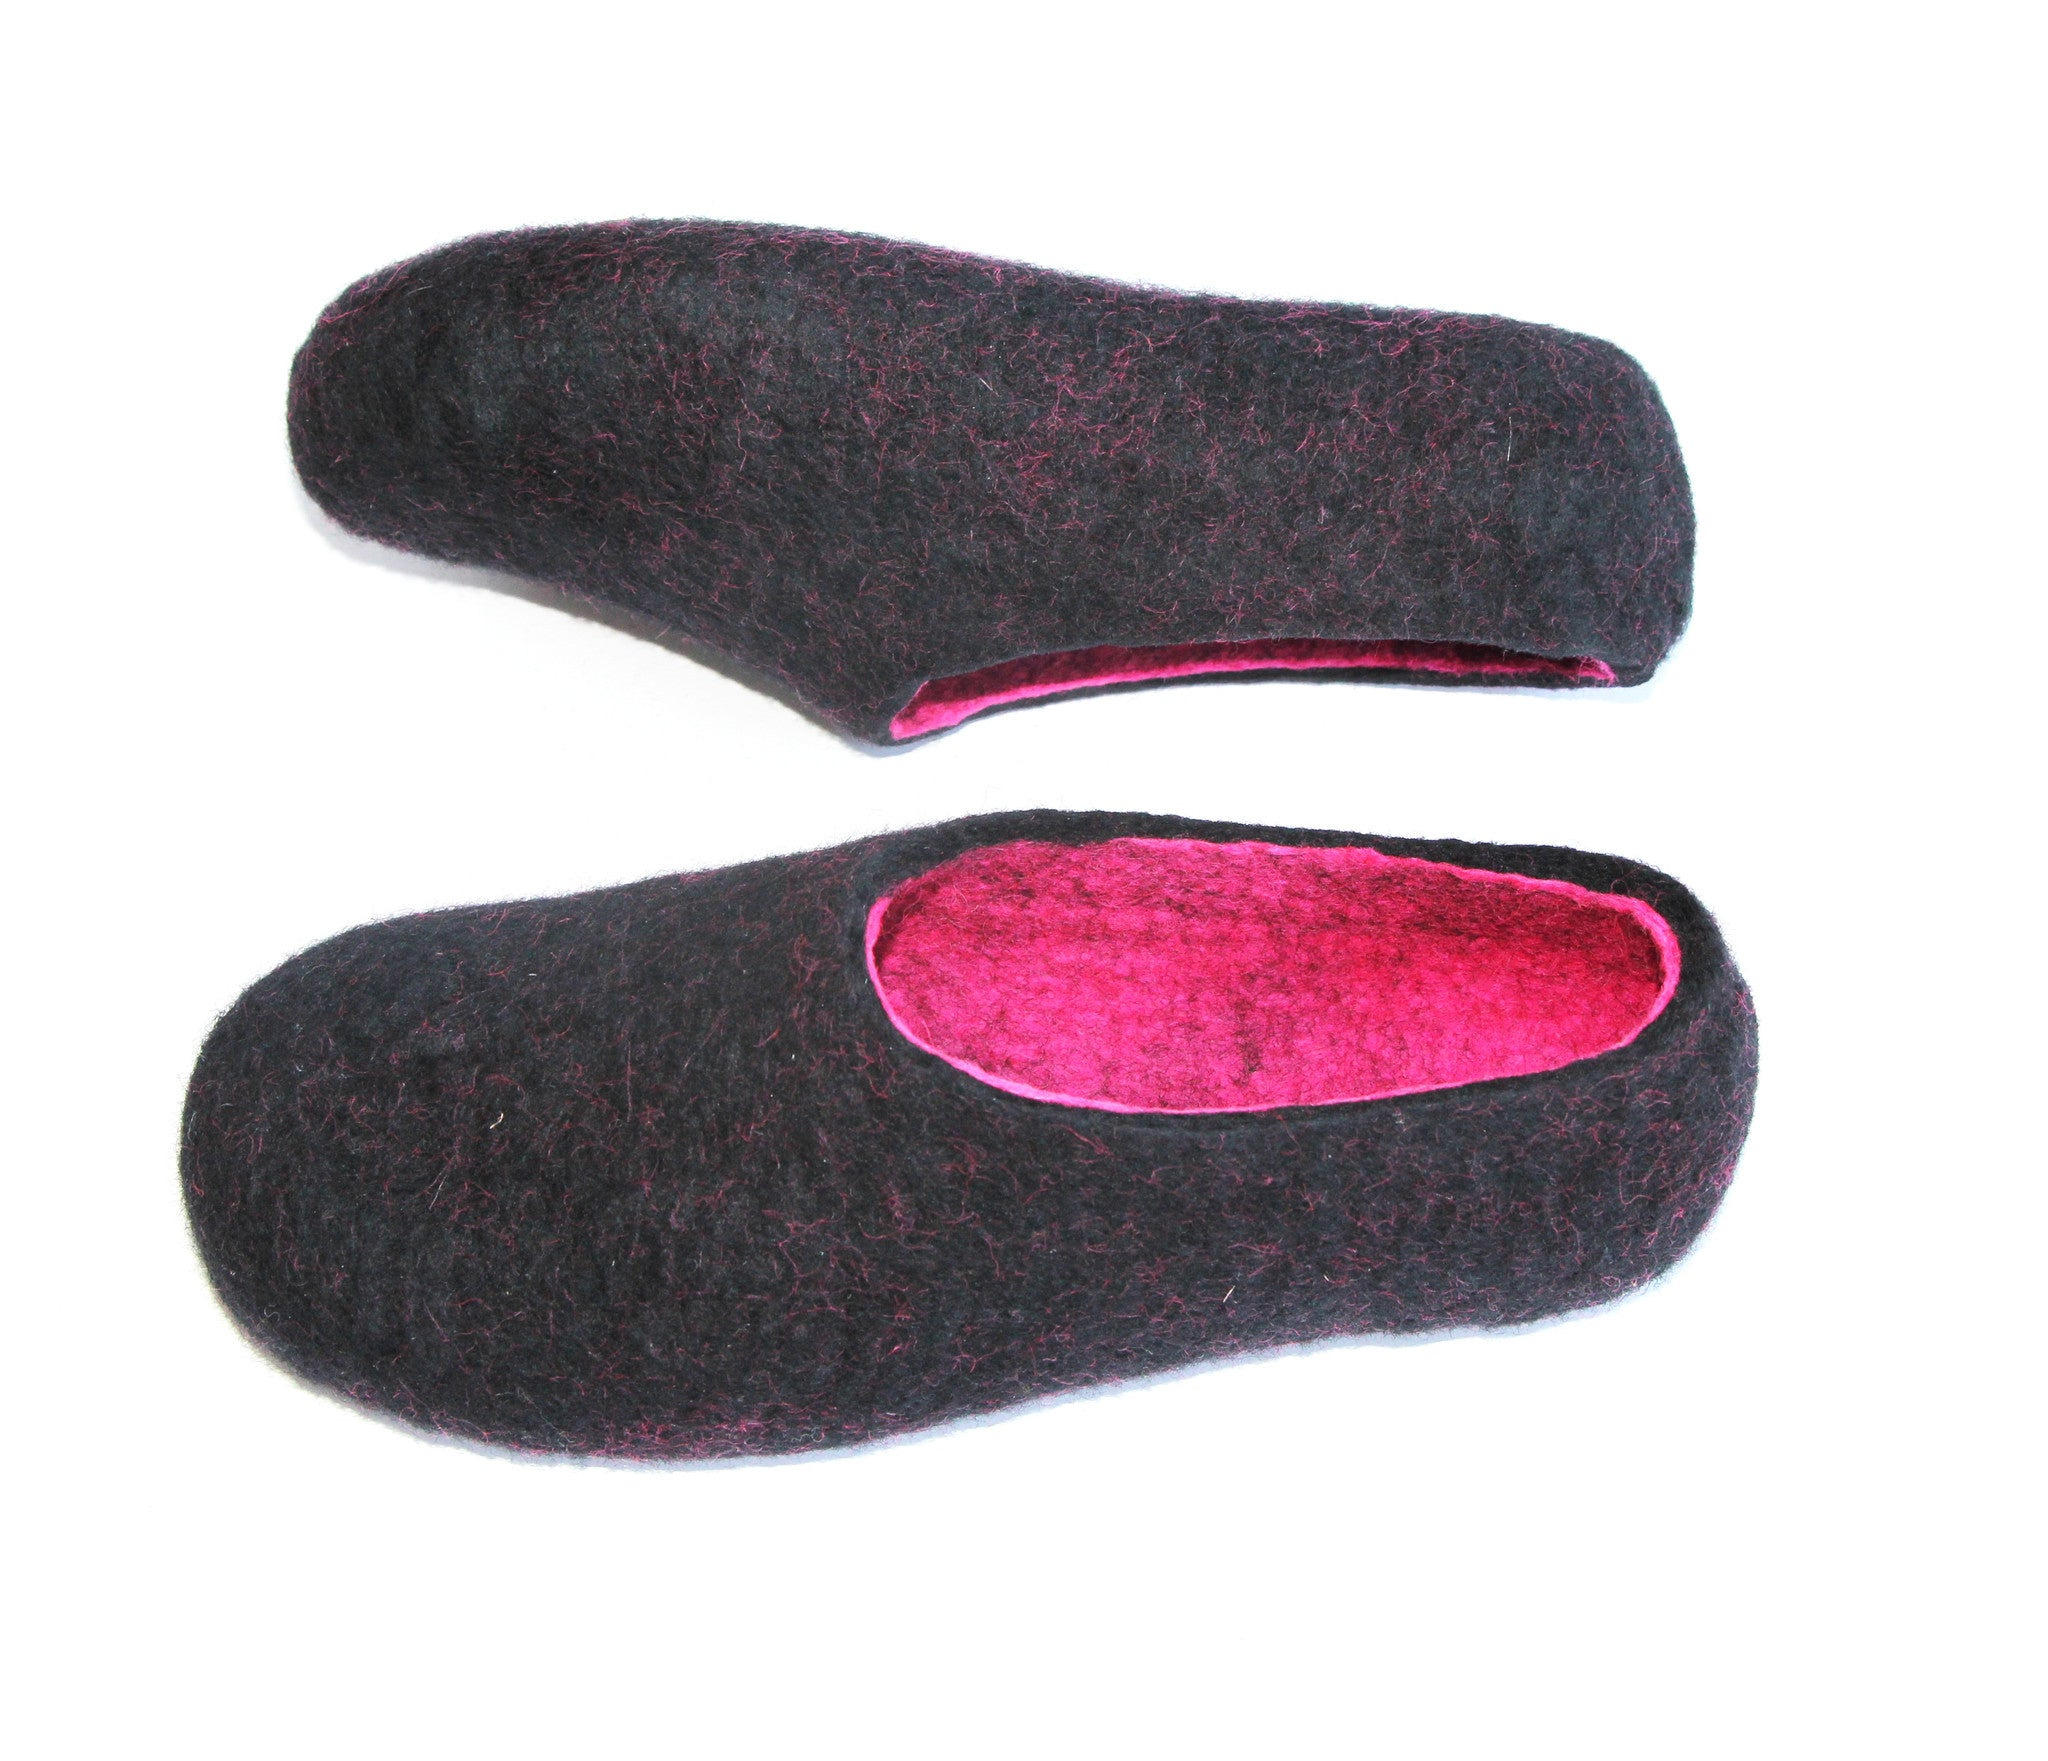 Womens Wool Felt Slippers Black Hot Pink Indoors - Wool Walker  - 4